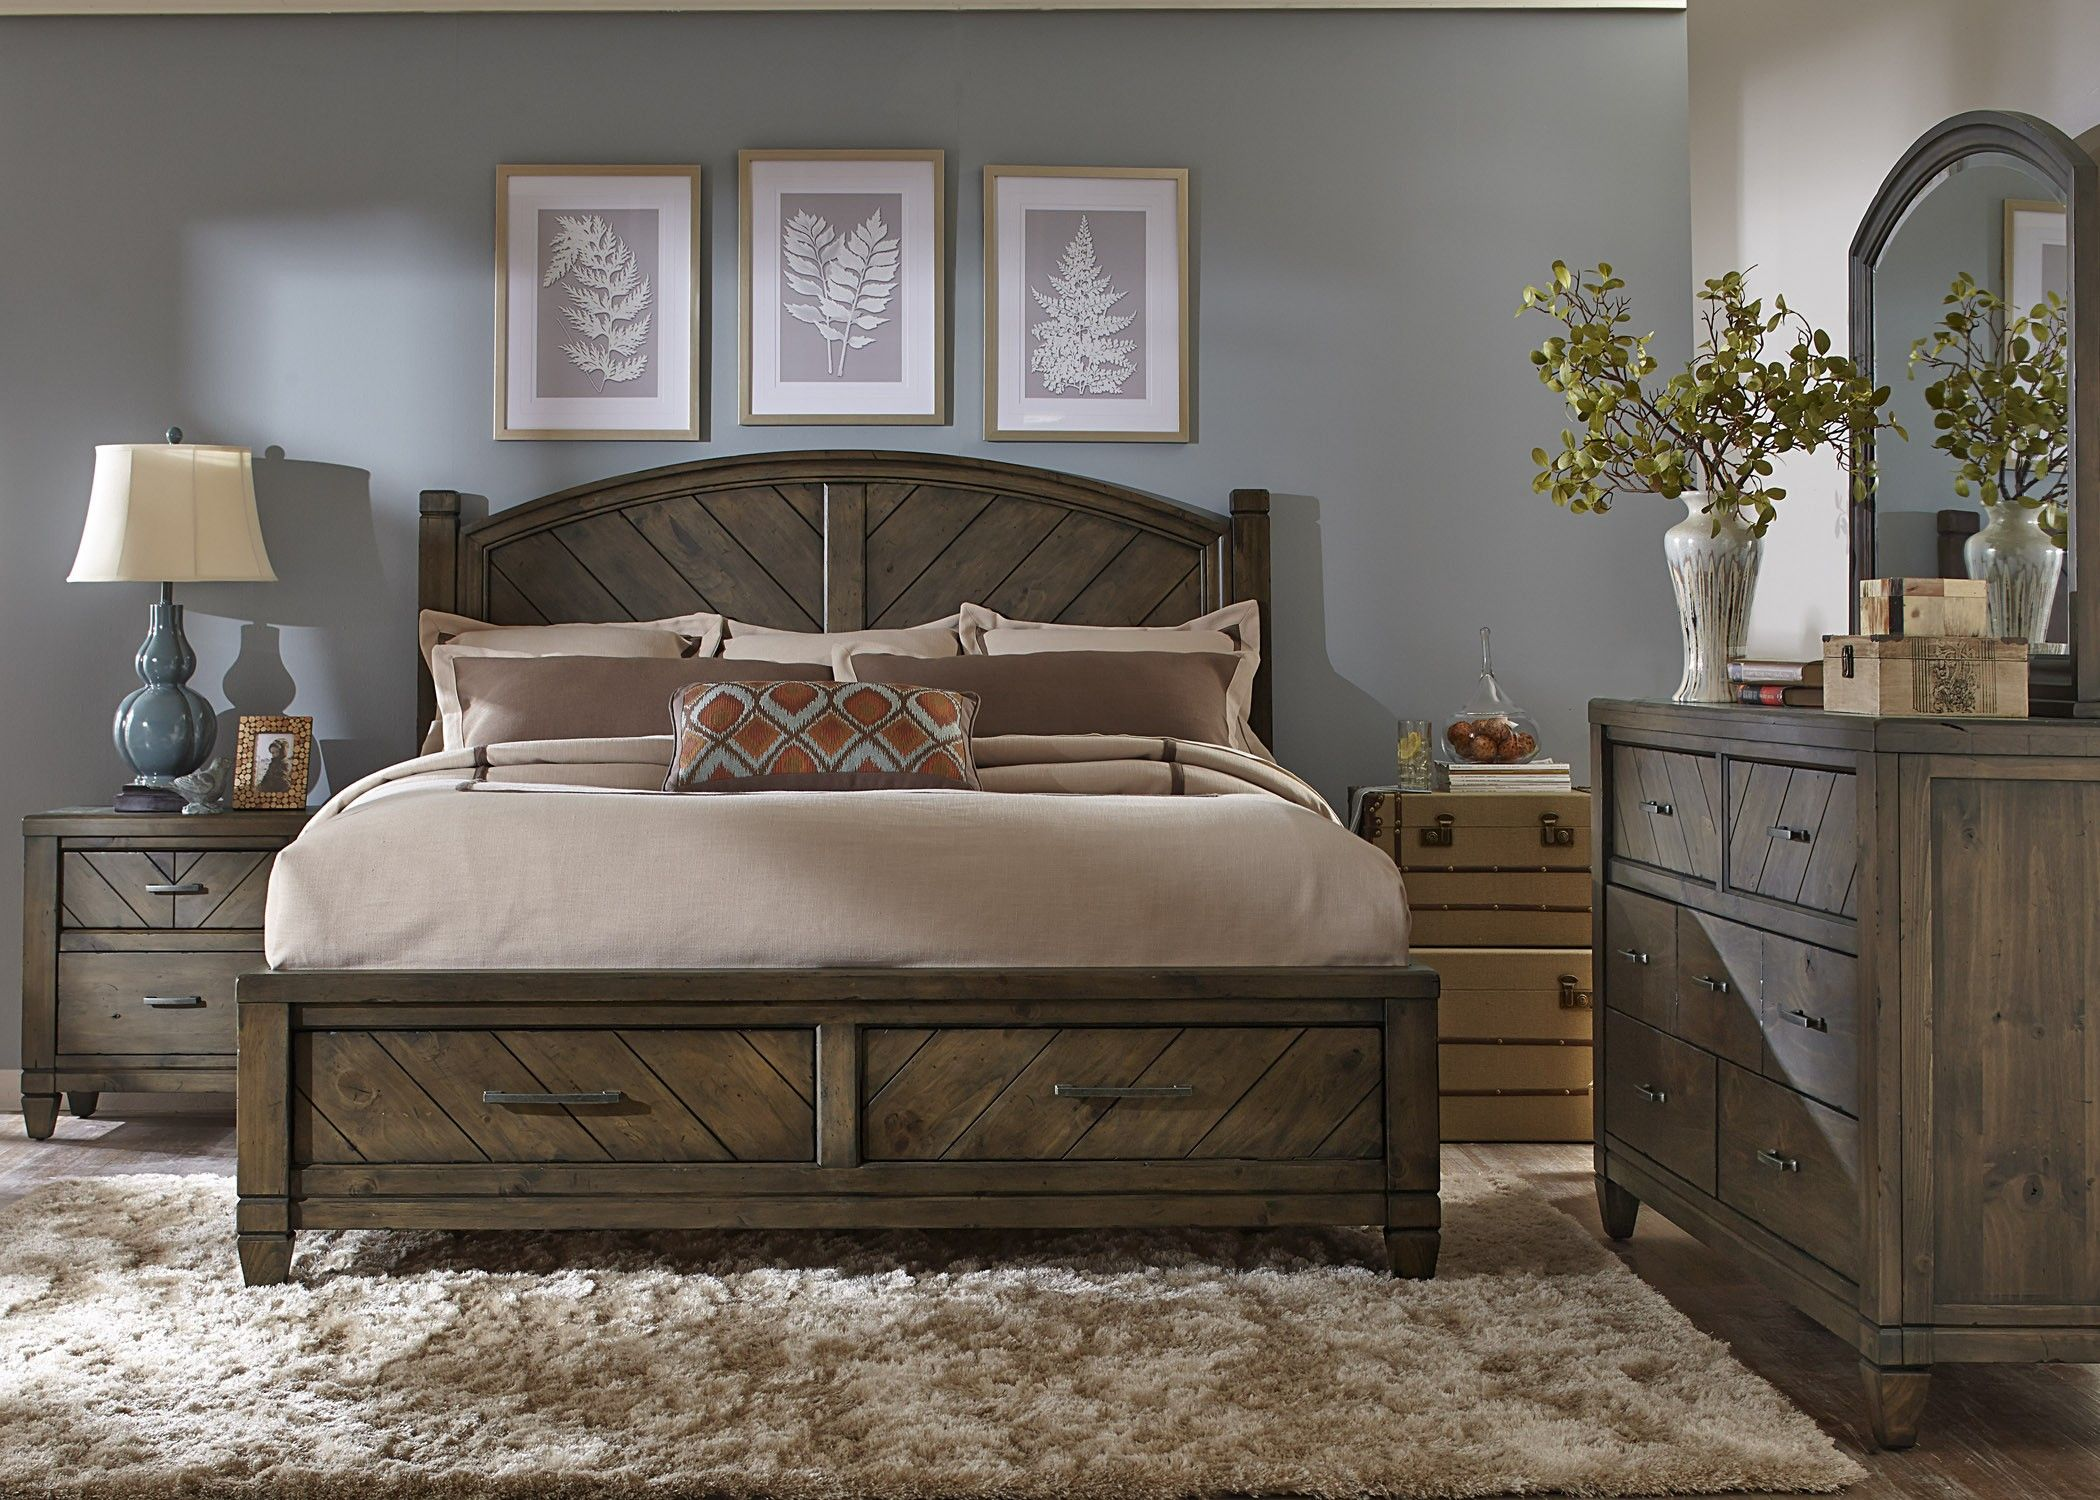 Modern Country Bedroom Decorating Ideas | Bedroom Decor | Modern ...